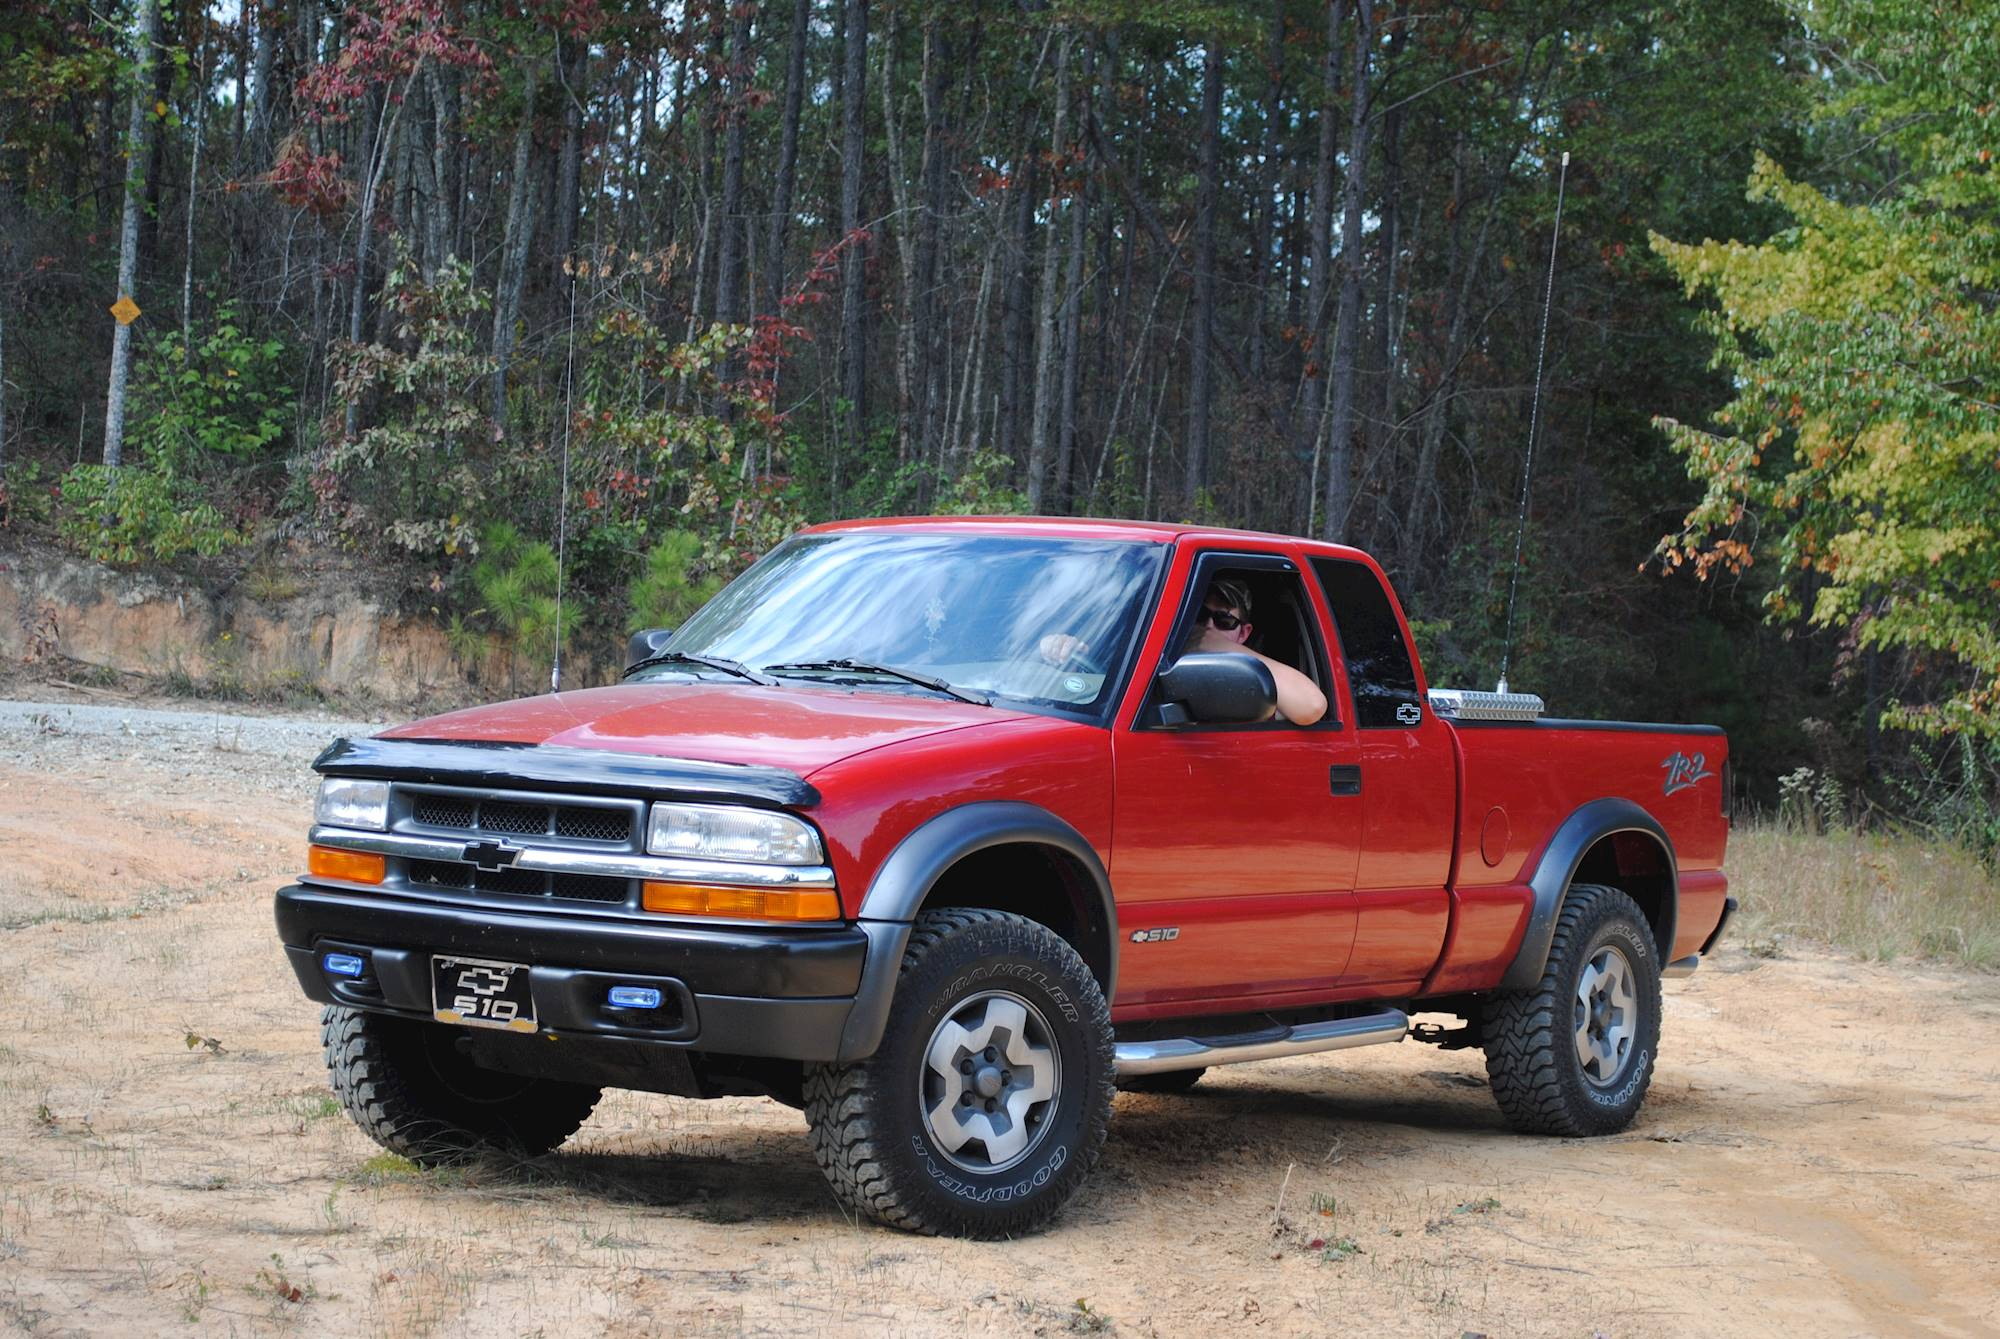 2004 Gmc Sonoma Sls Crew Cab Pickup 4 3l V6 4x4 Auto 4 6 Ft Bed